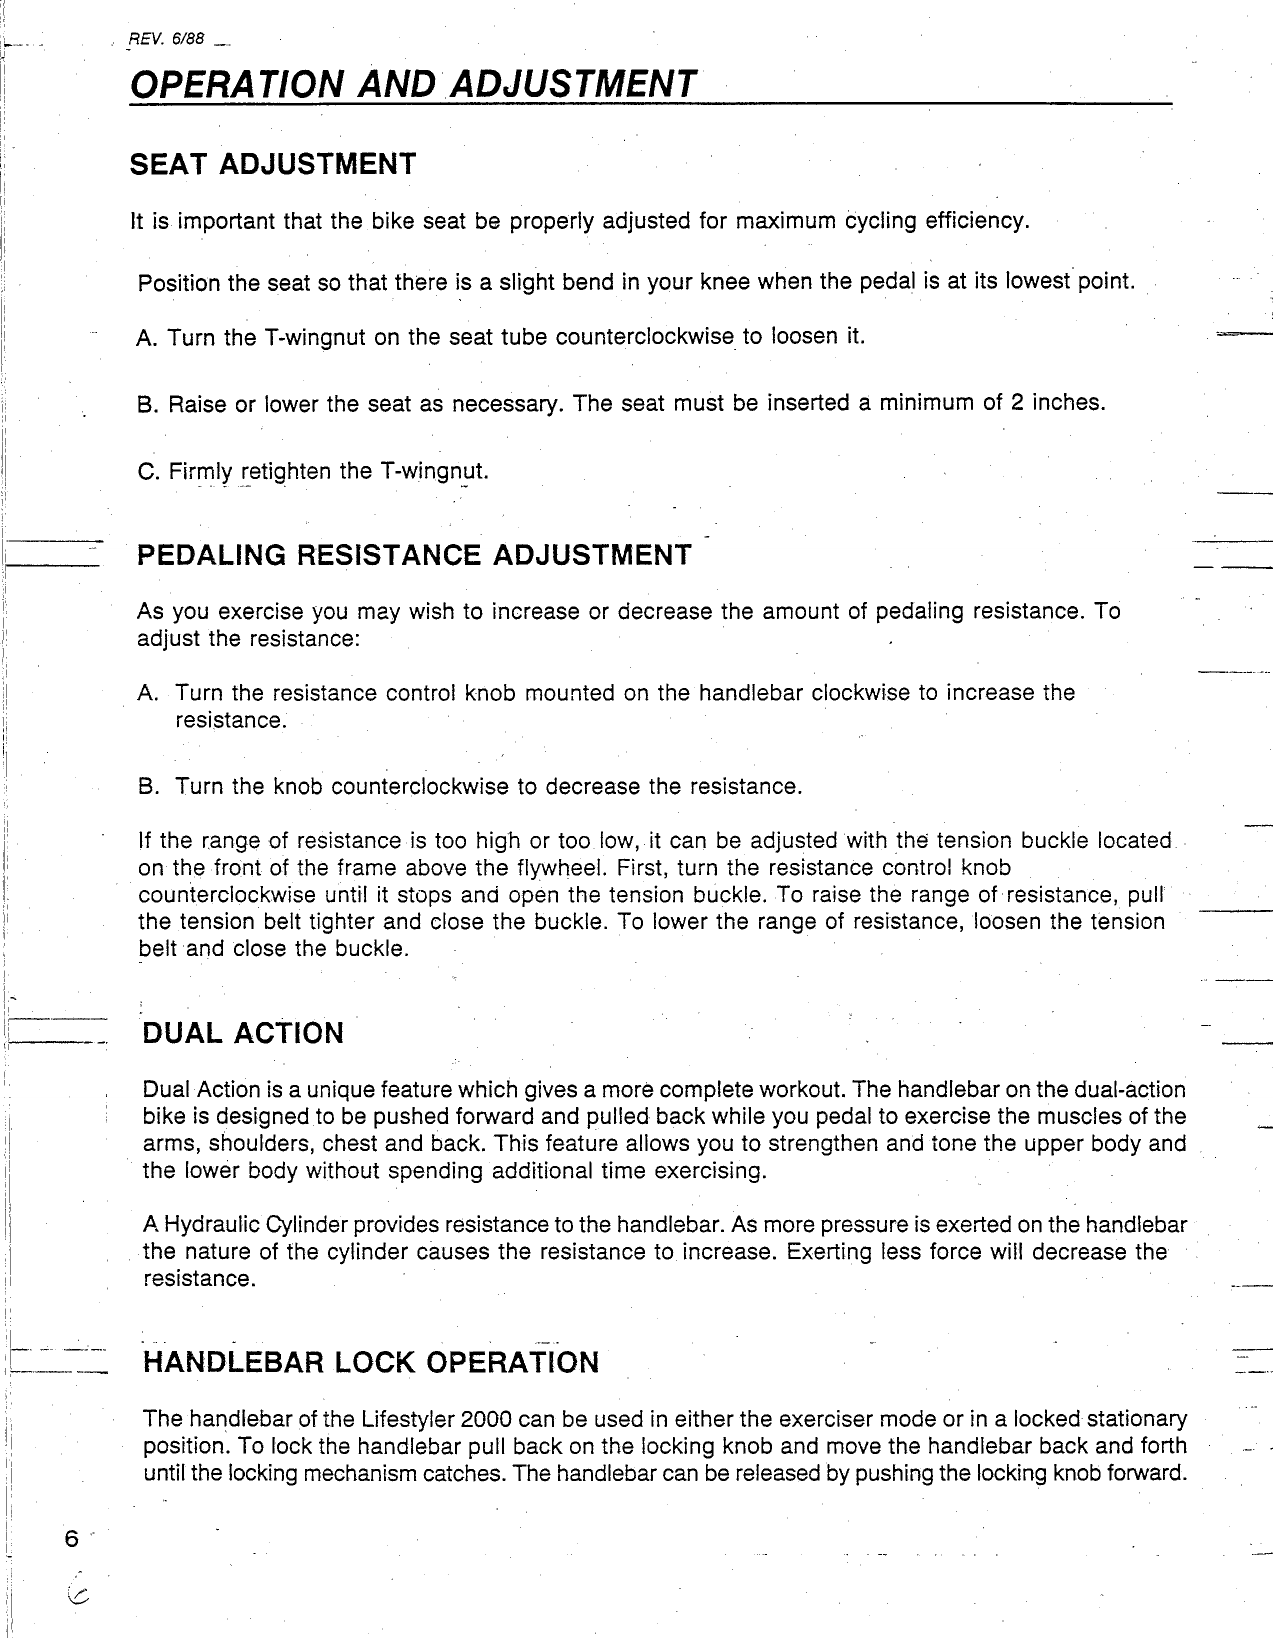 Lifestyler 291170 Owners Manual